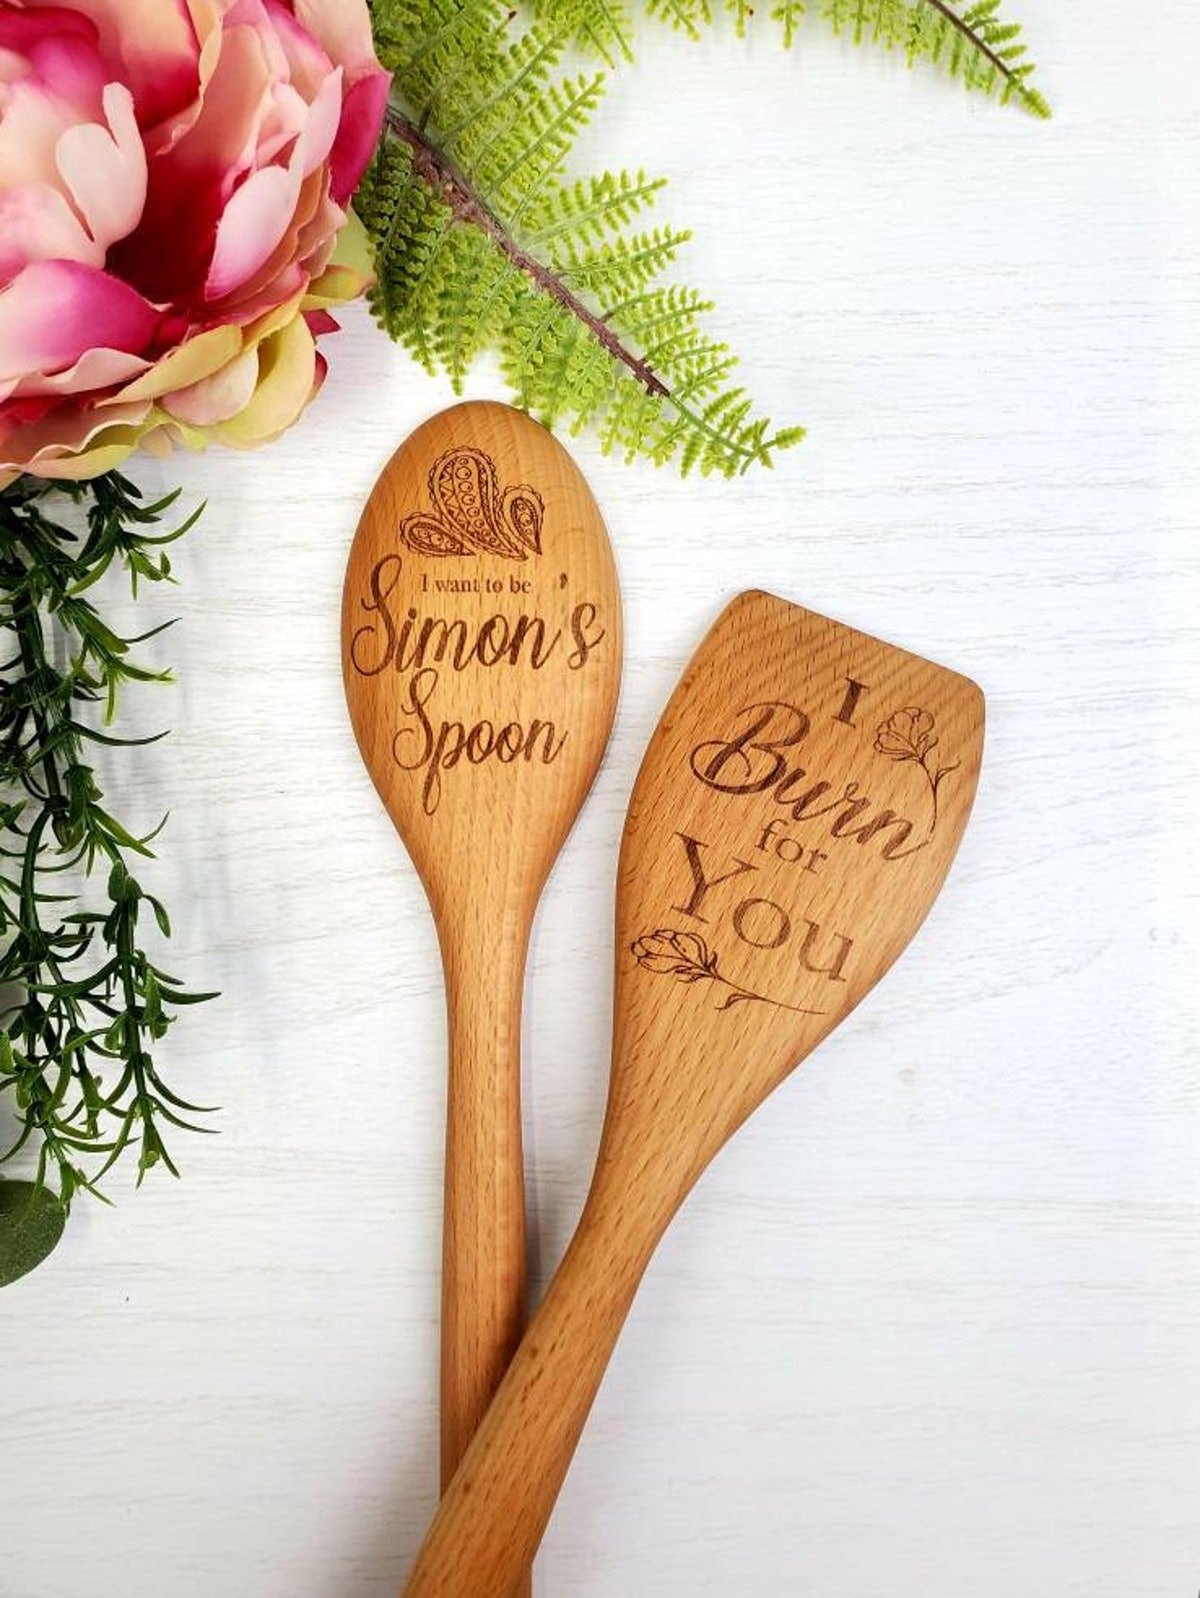 Bridgerton Inspired I Burn for You and Simon's Spoon Wooden Spoon Set of Two Engraved Spoons